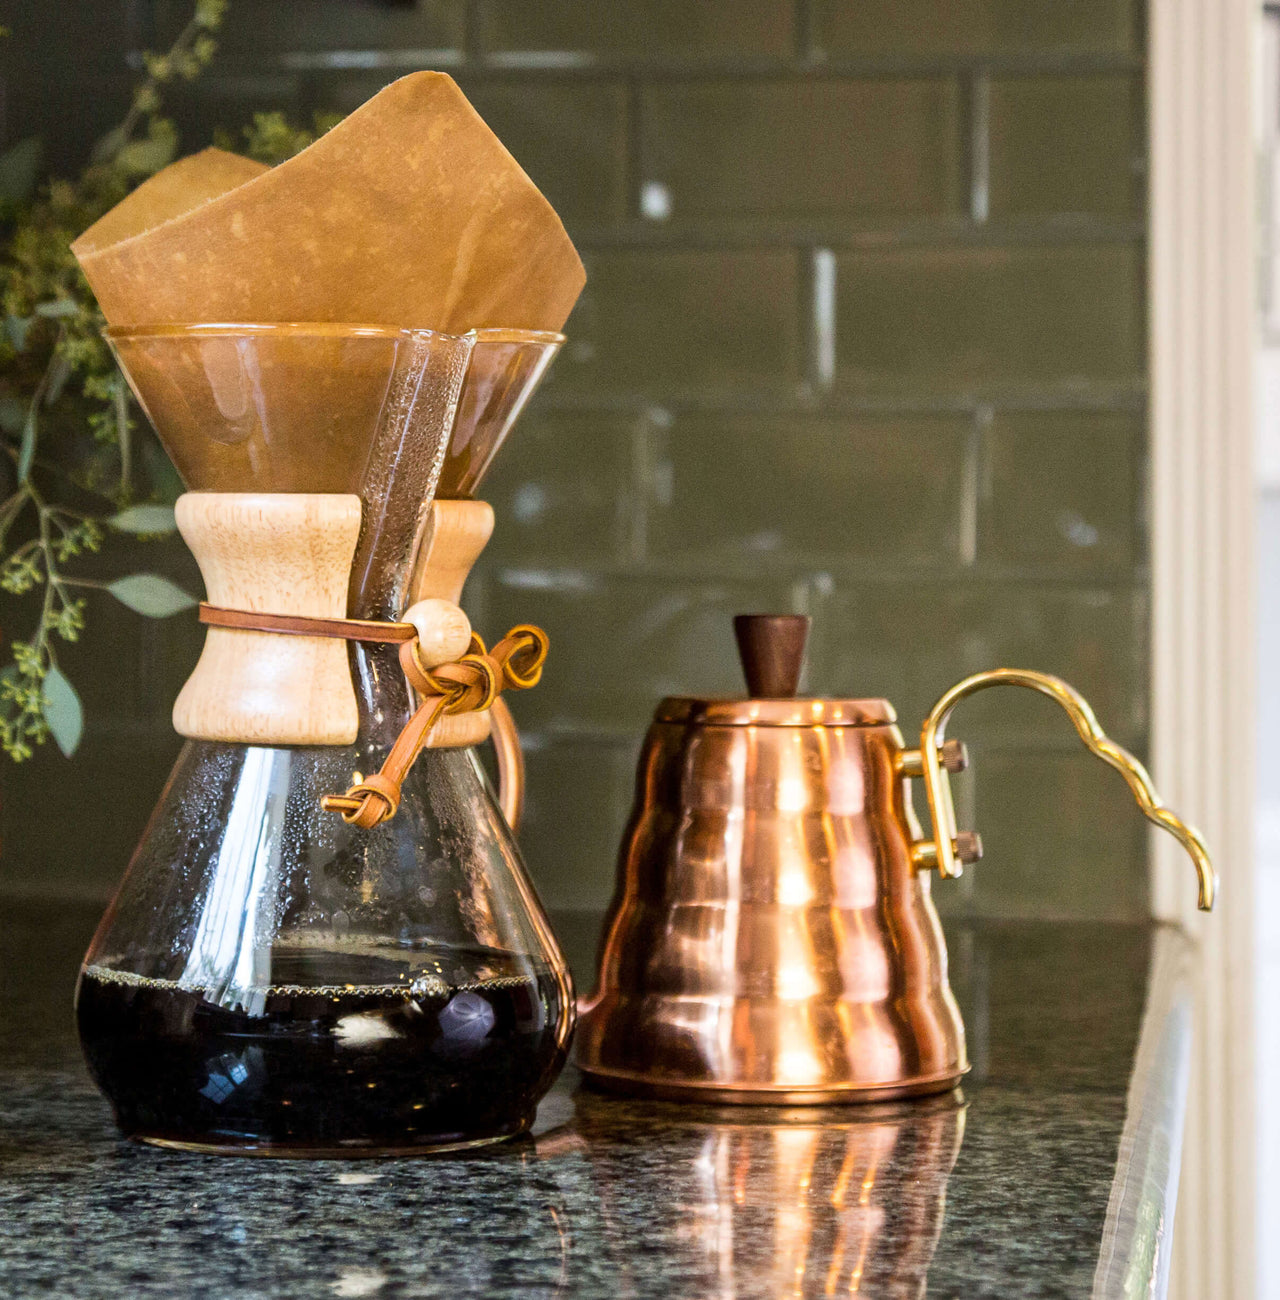 chemex fill with coffee next to brass kettle on counter